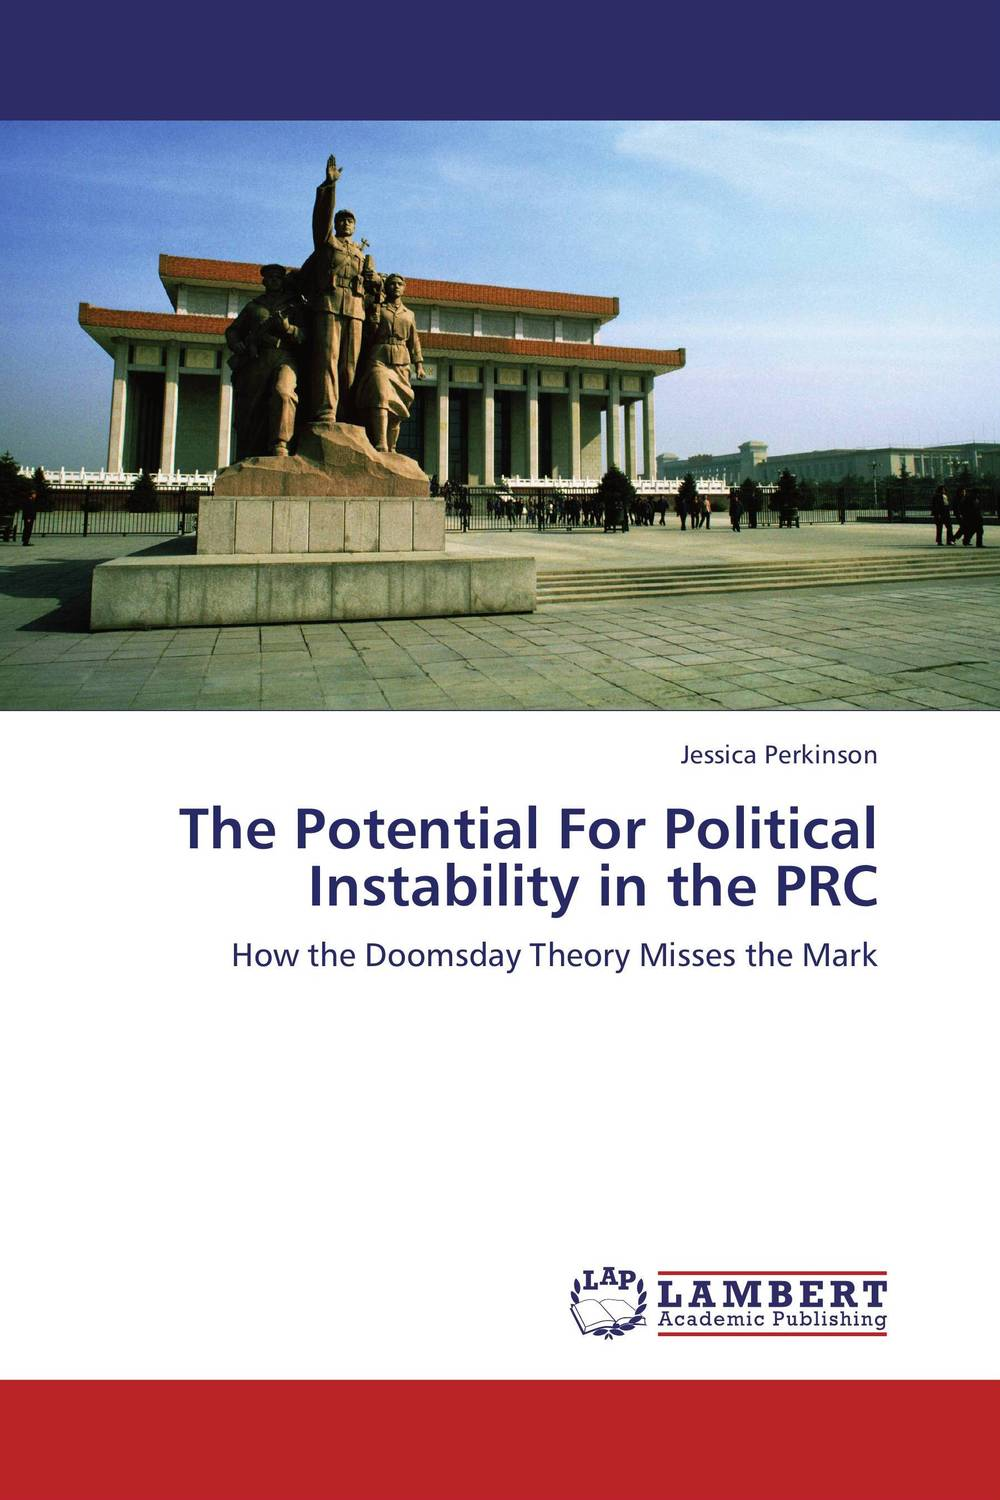 The Potential For Political Instability in the PRC performance or instability